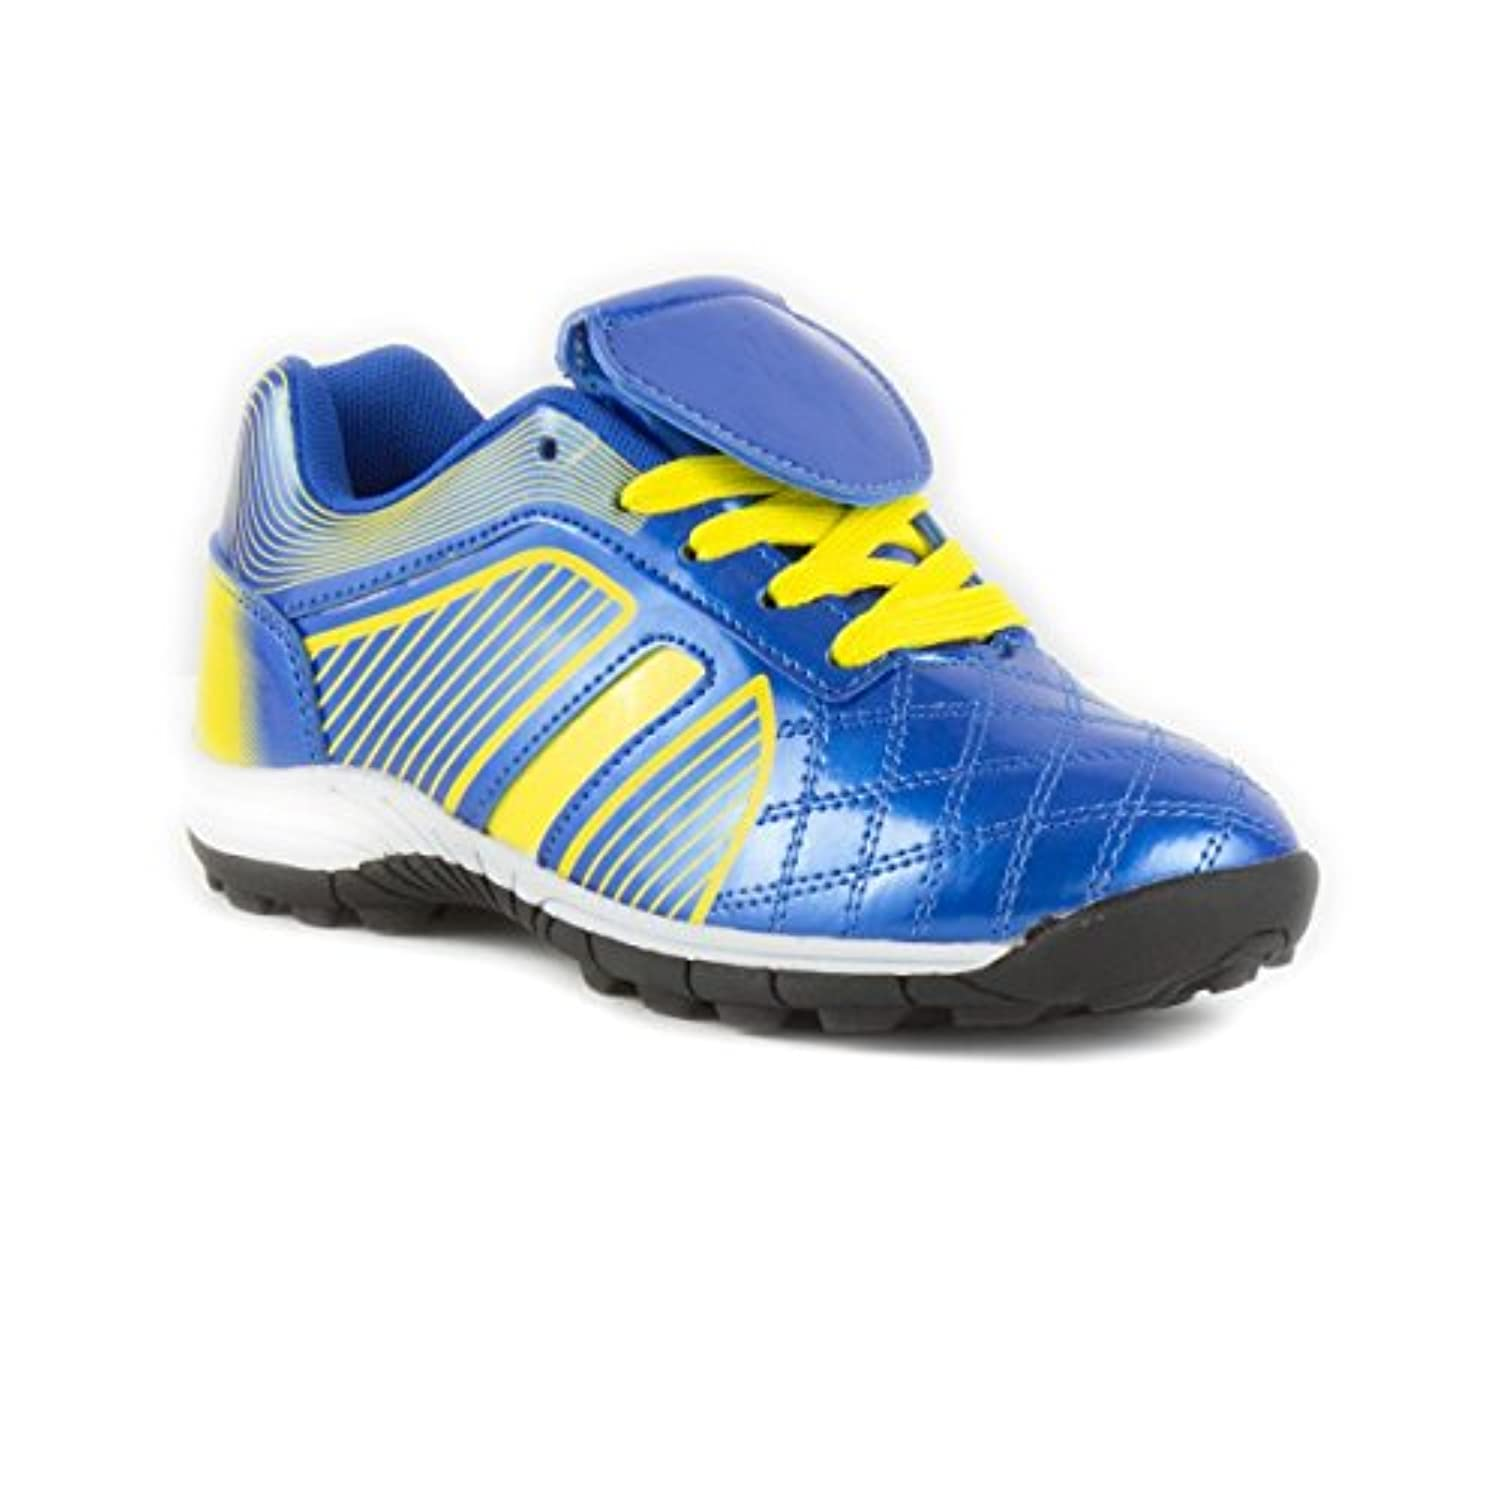 Tick - Boys Blue & Yellow Lace Up Astroturf Trainer - Size 2 - Blue